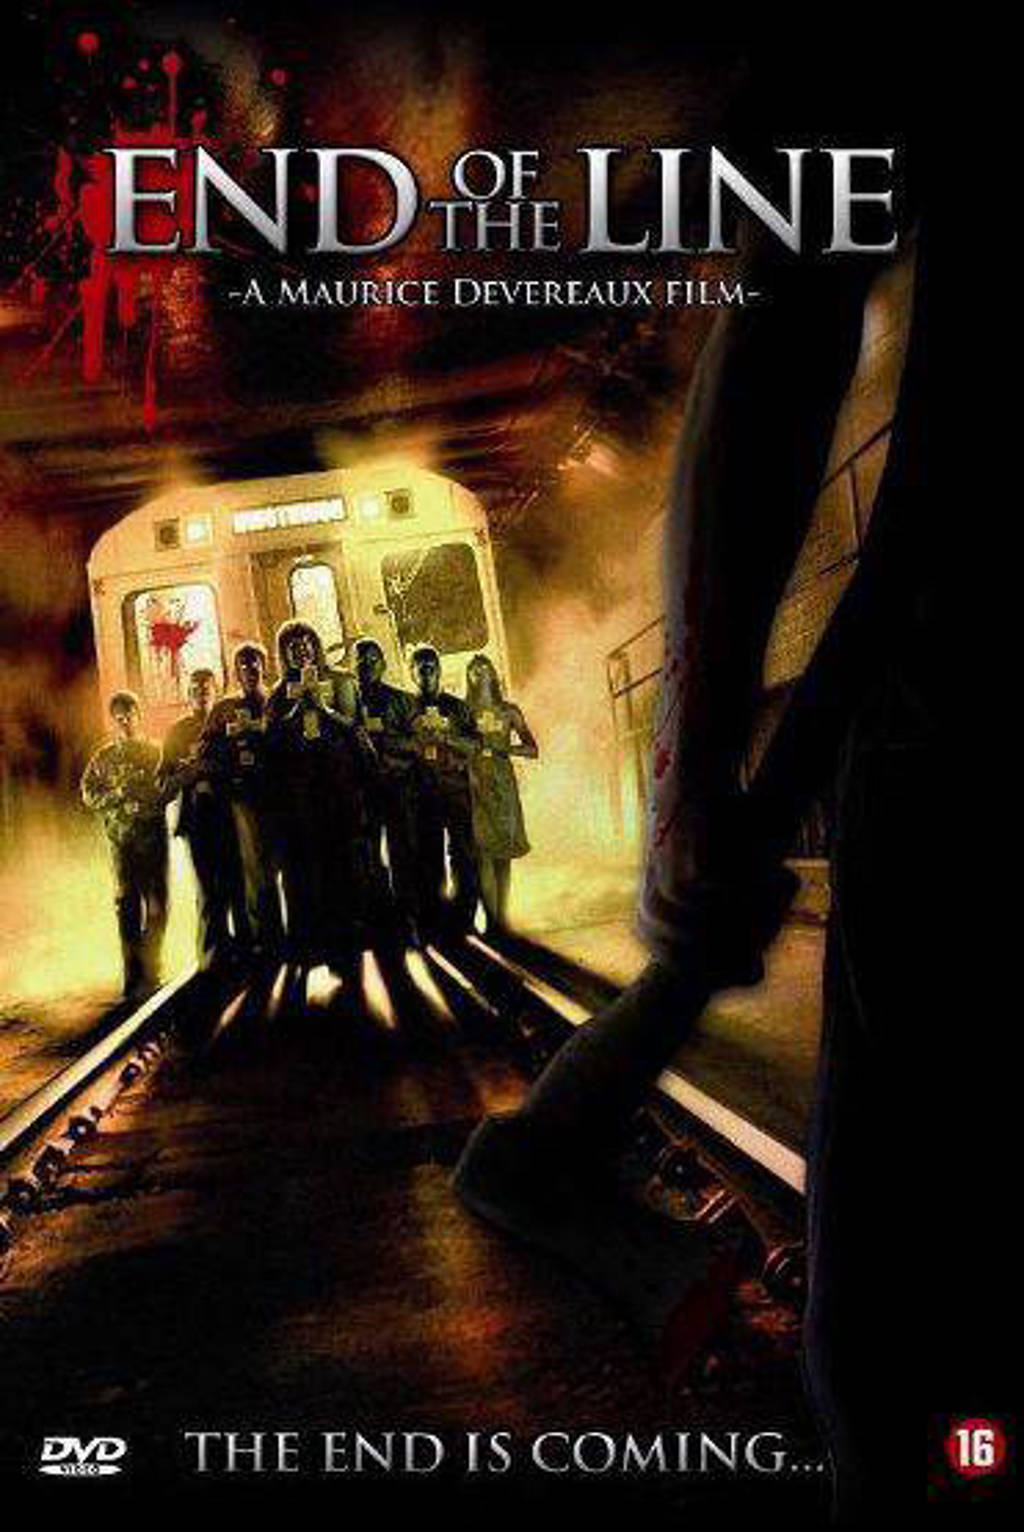 End of the line (DVD)